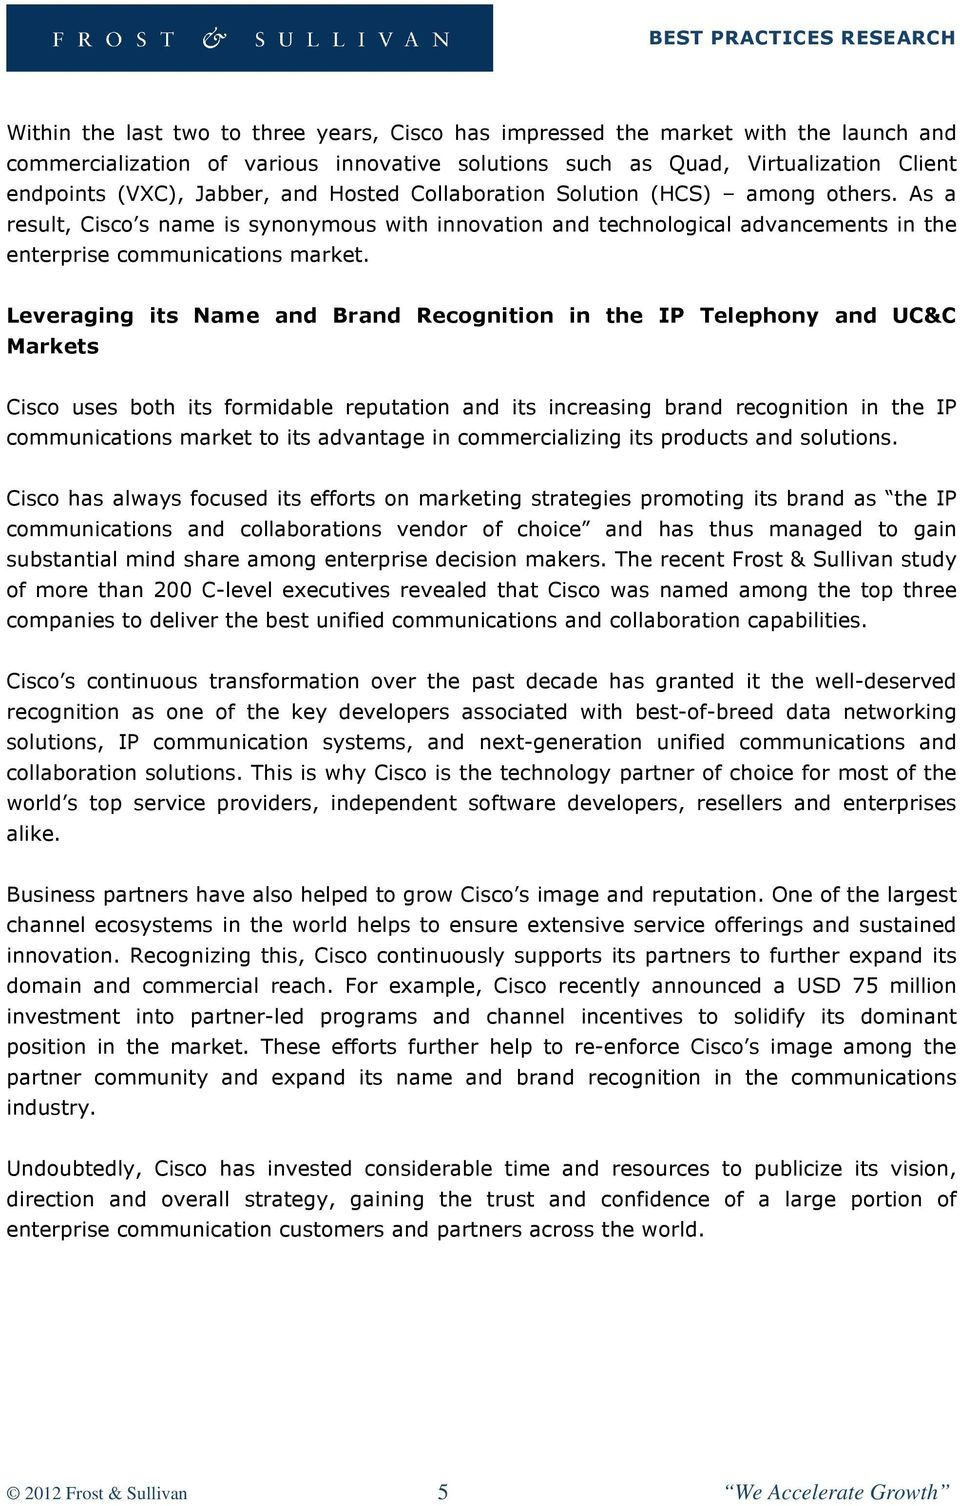 Leveraging its Name and Brand Recognition in the IP Telephony and UC&C Markets Cisco uses both its formidable reputation and its increasing brand recognition in the IP communications market to its